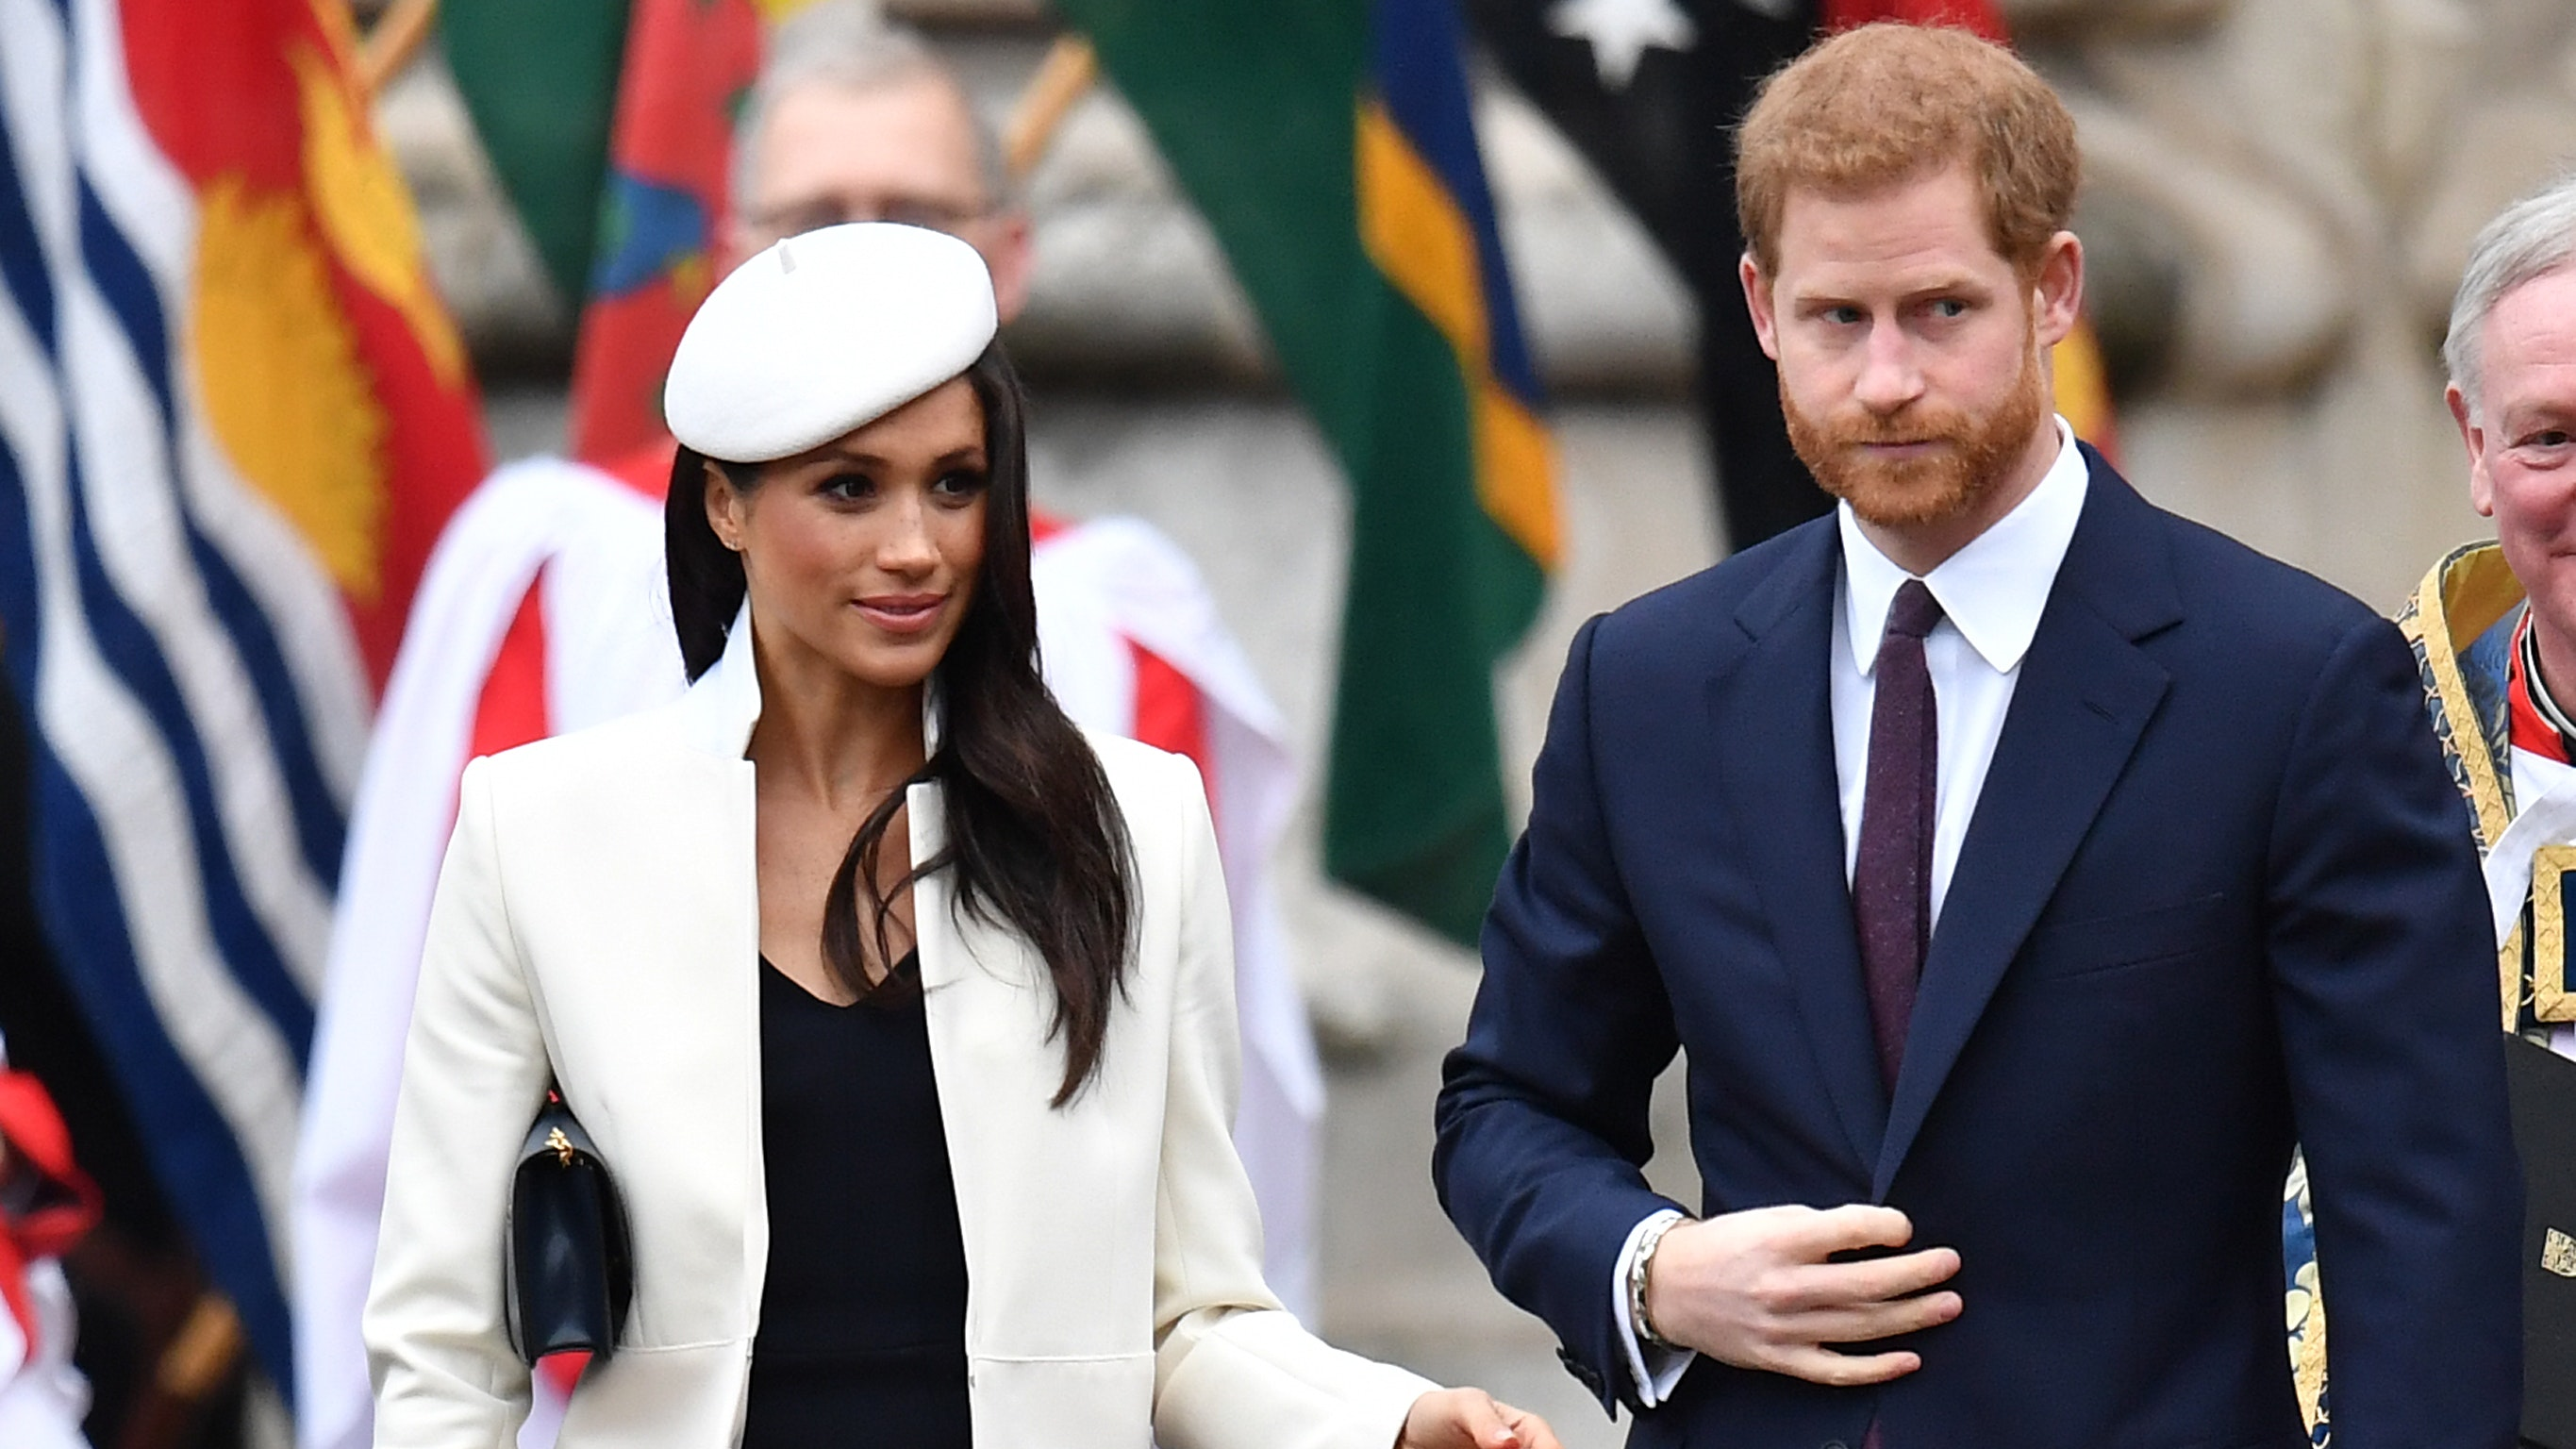 Queen Elizabeth II Offers Official Consent For The Upcoming Royal Wedding